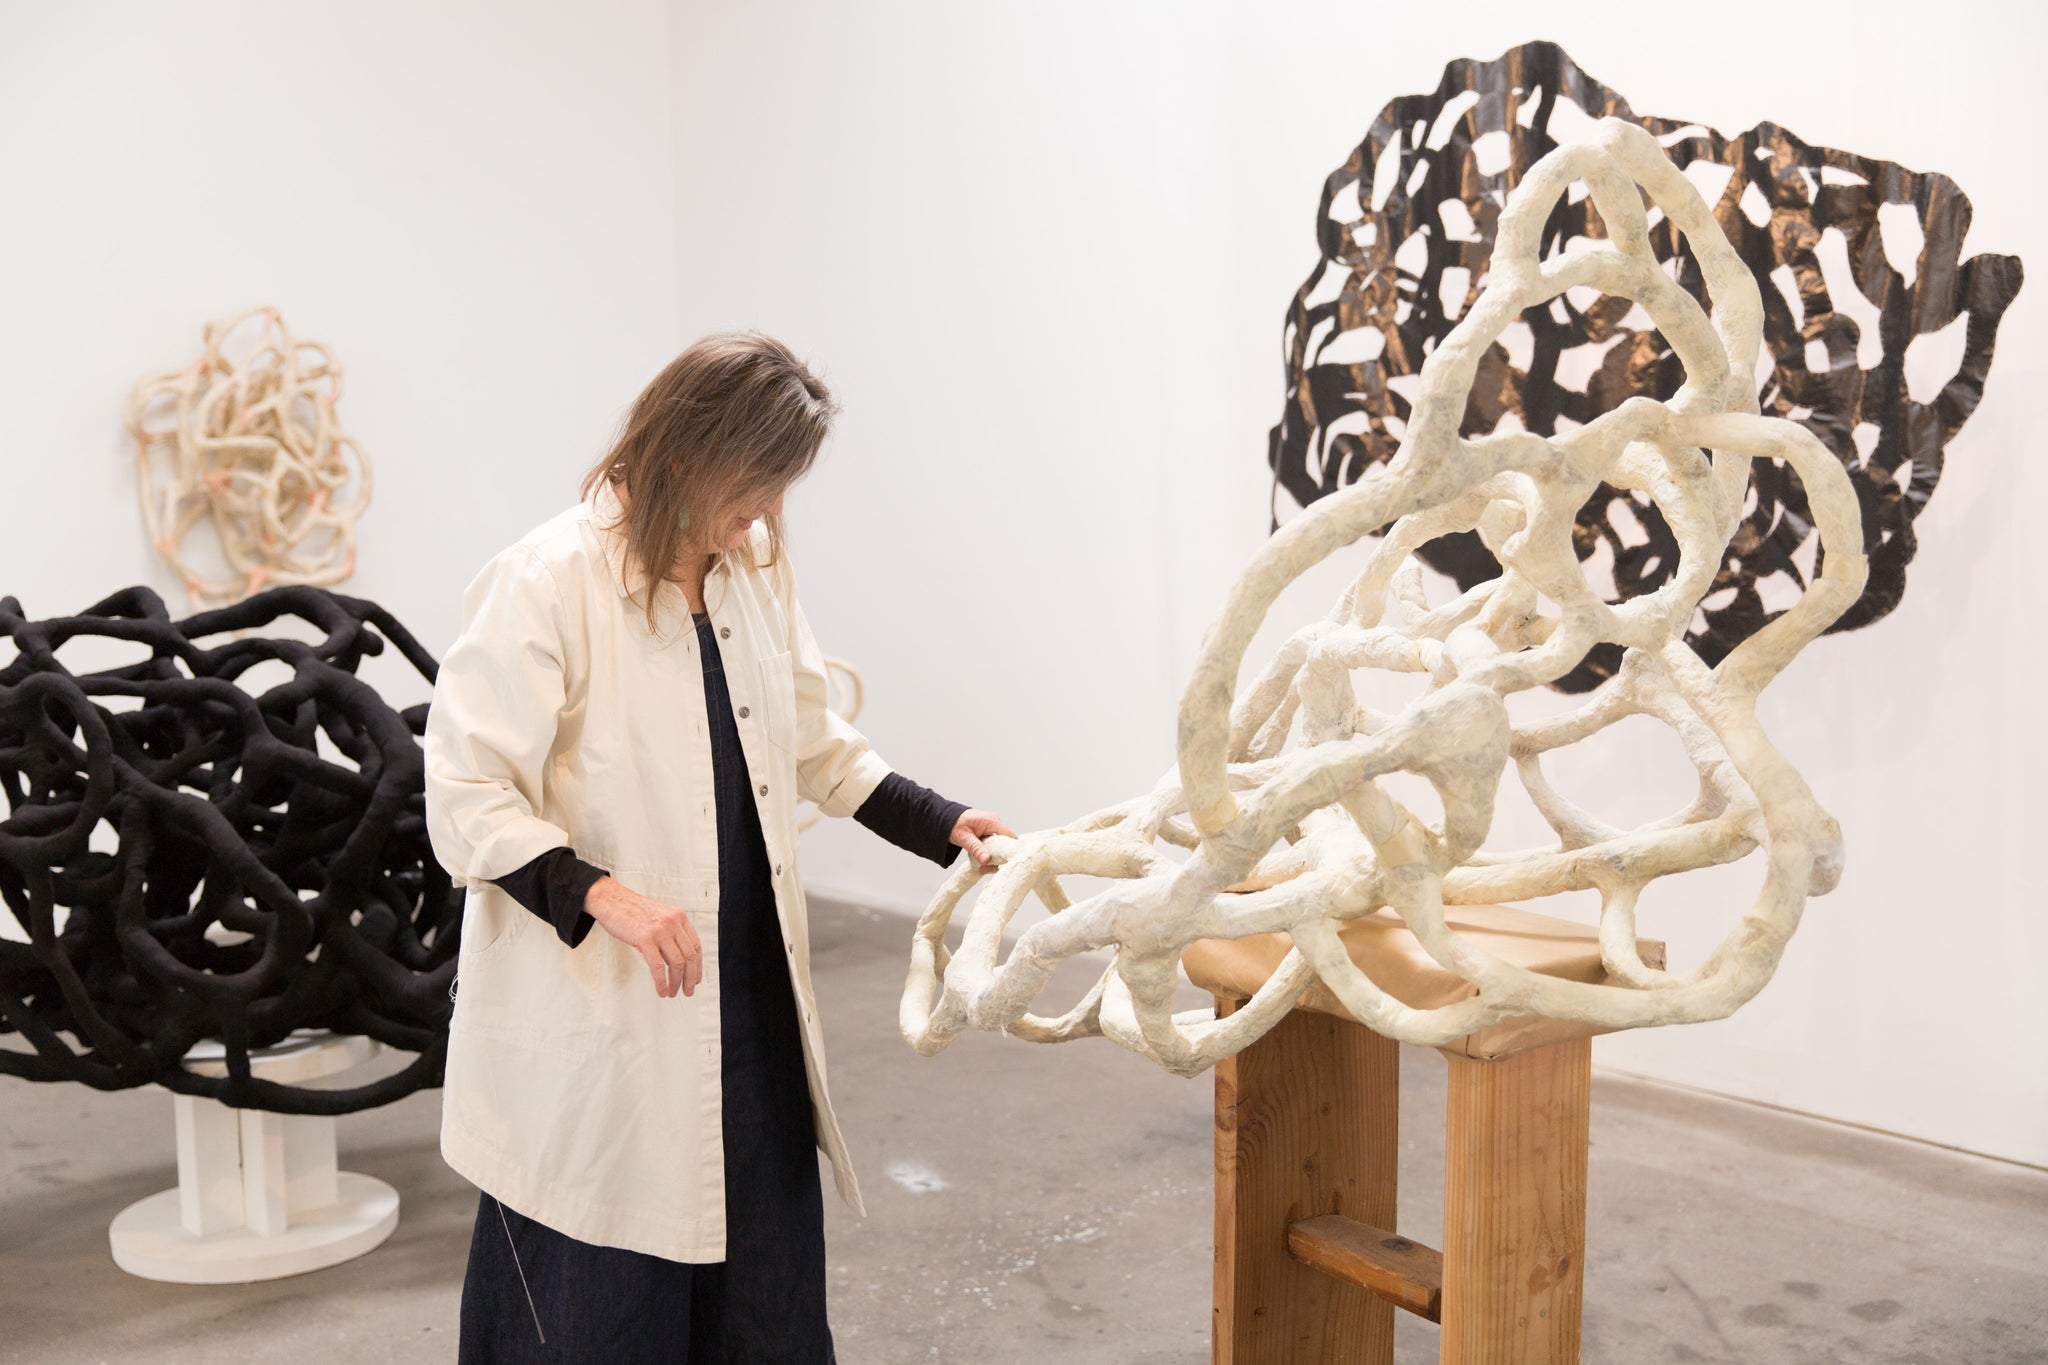 artist, Laura Cooper, touching her sculpture